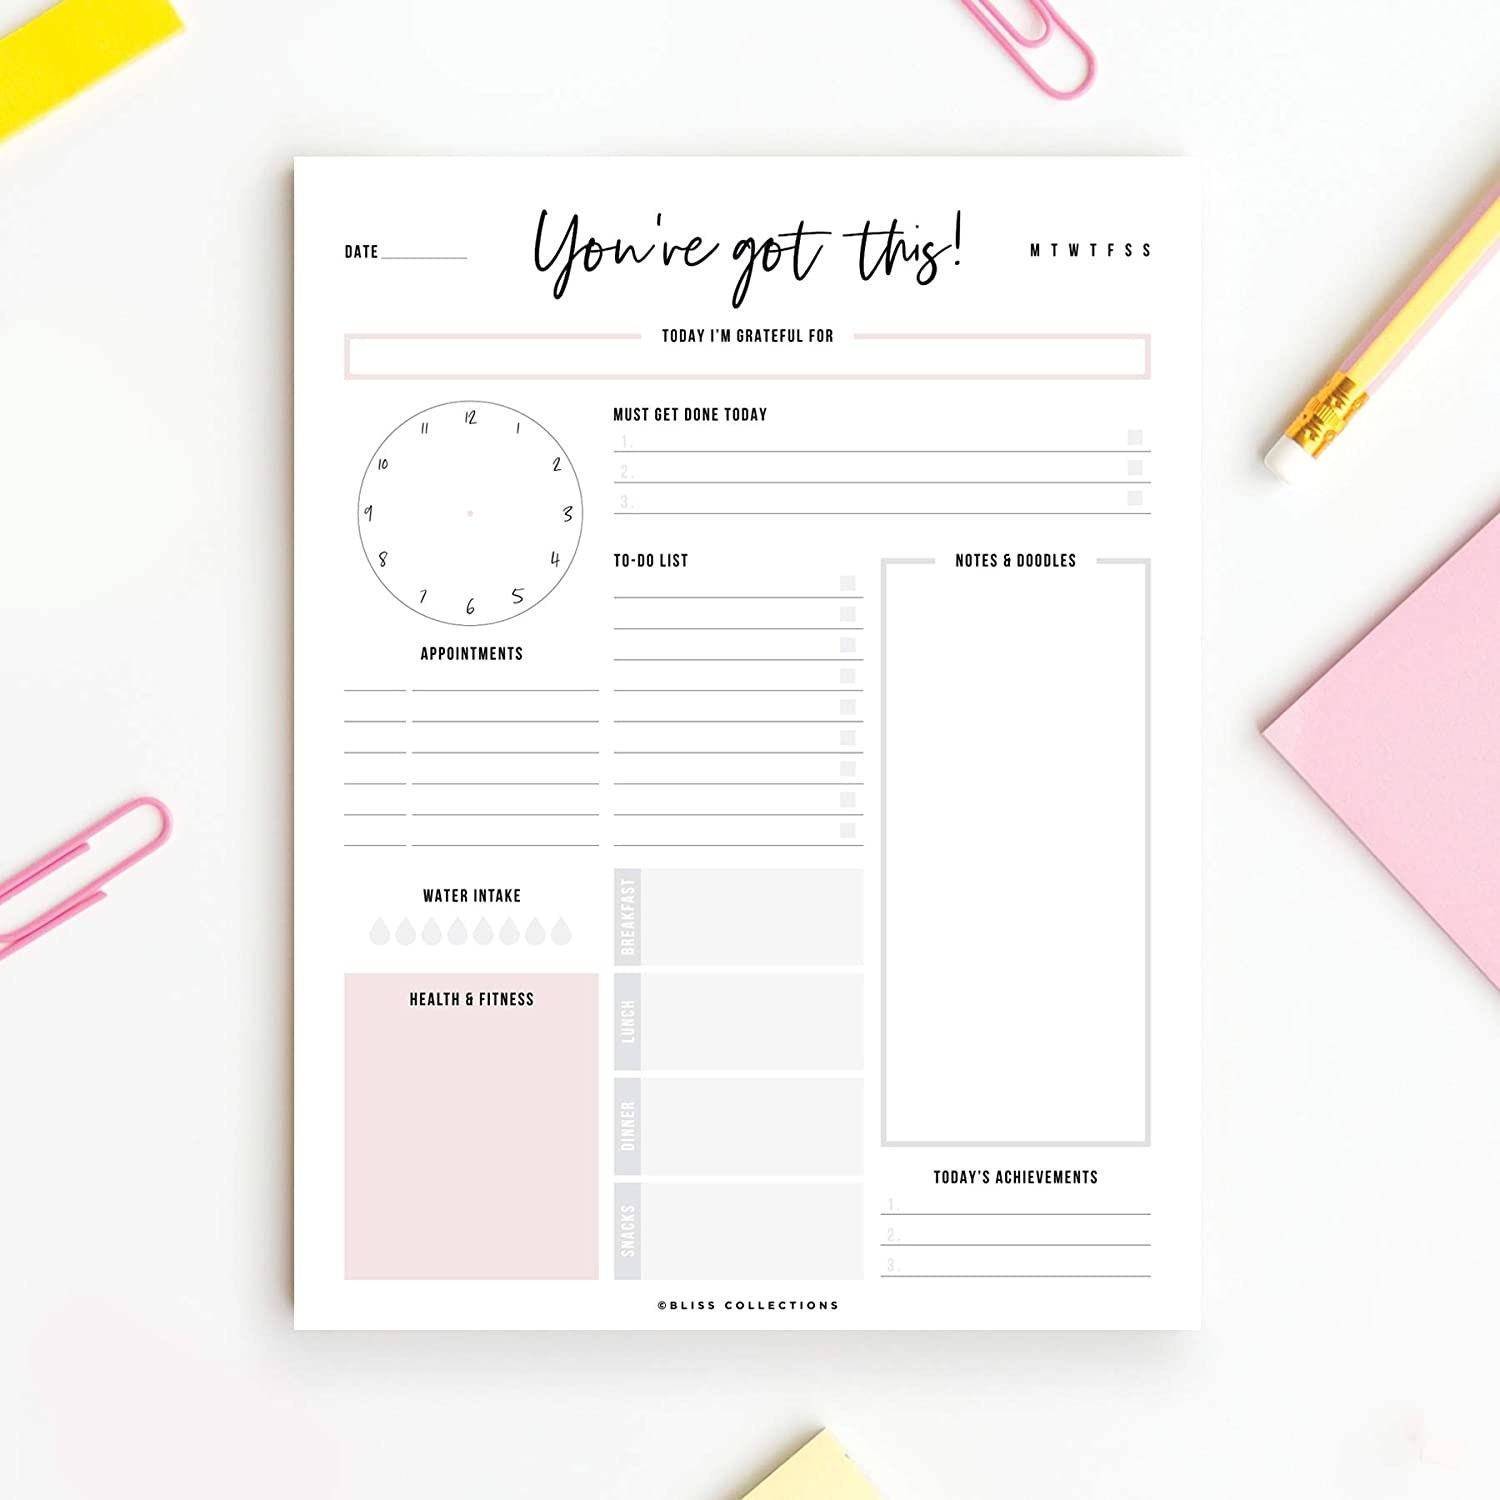 The to-do list notepad surrounded by sticky notes, pencils, and paperclips